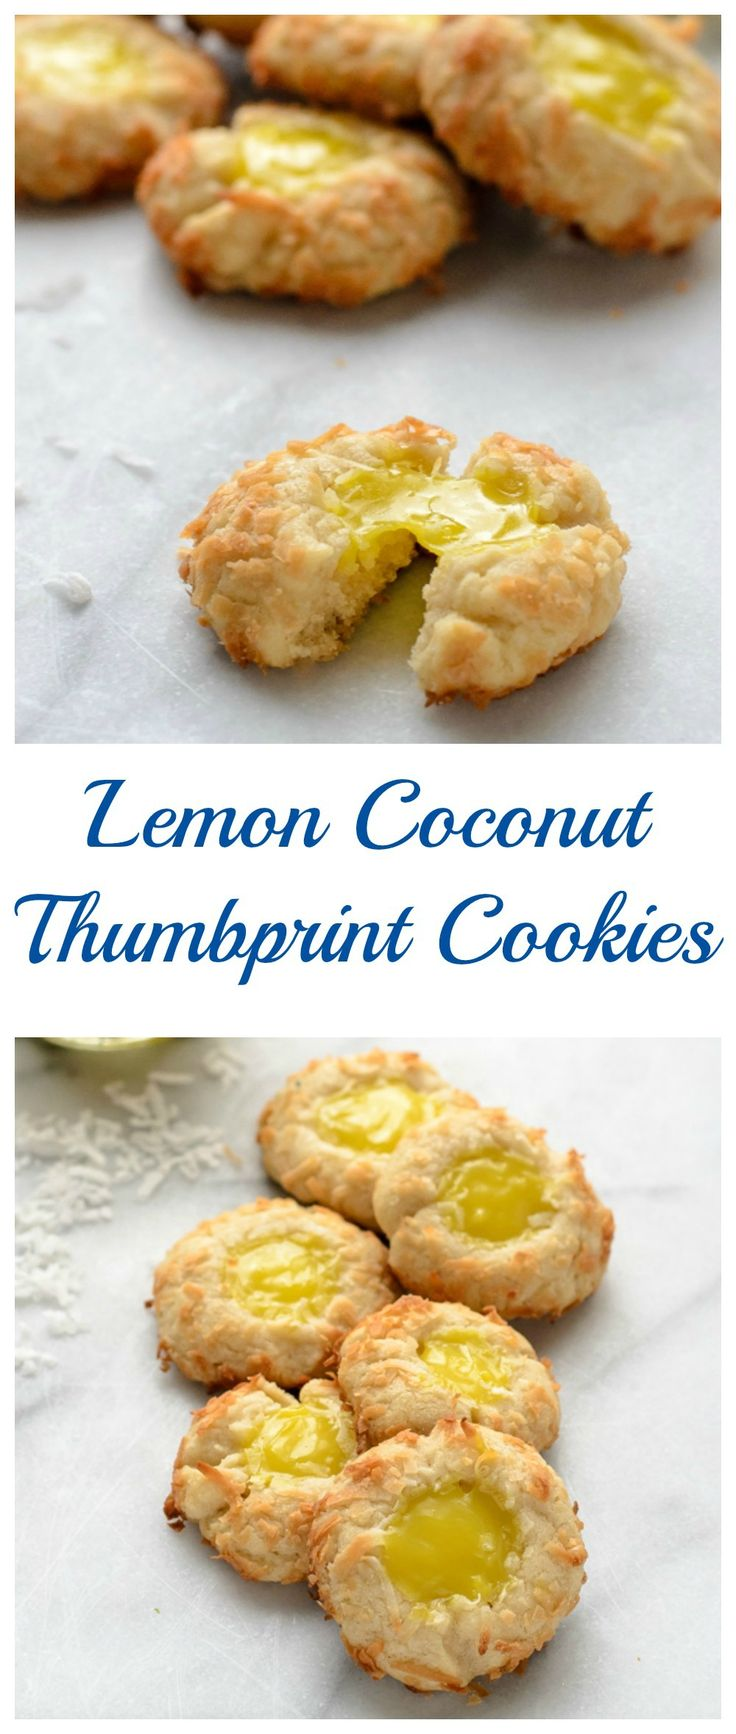 Buttery Lemon Coconut Thumbprint Cookies. An spring version of classic jam thumbprints made with lemon curd.